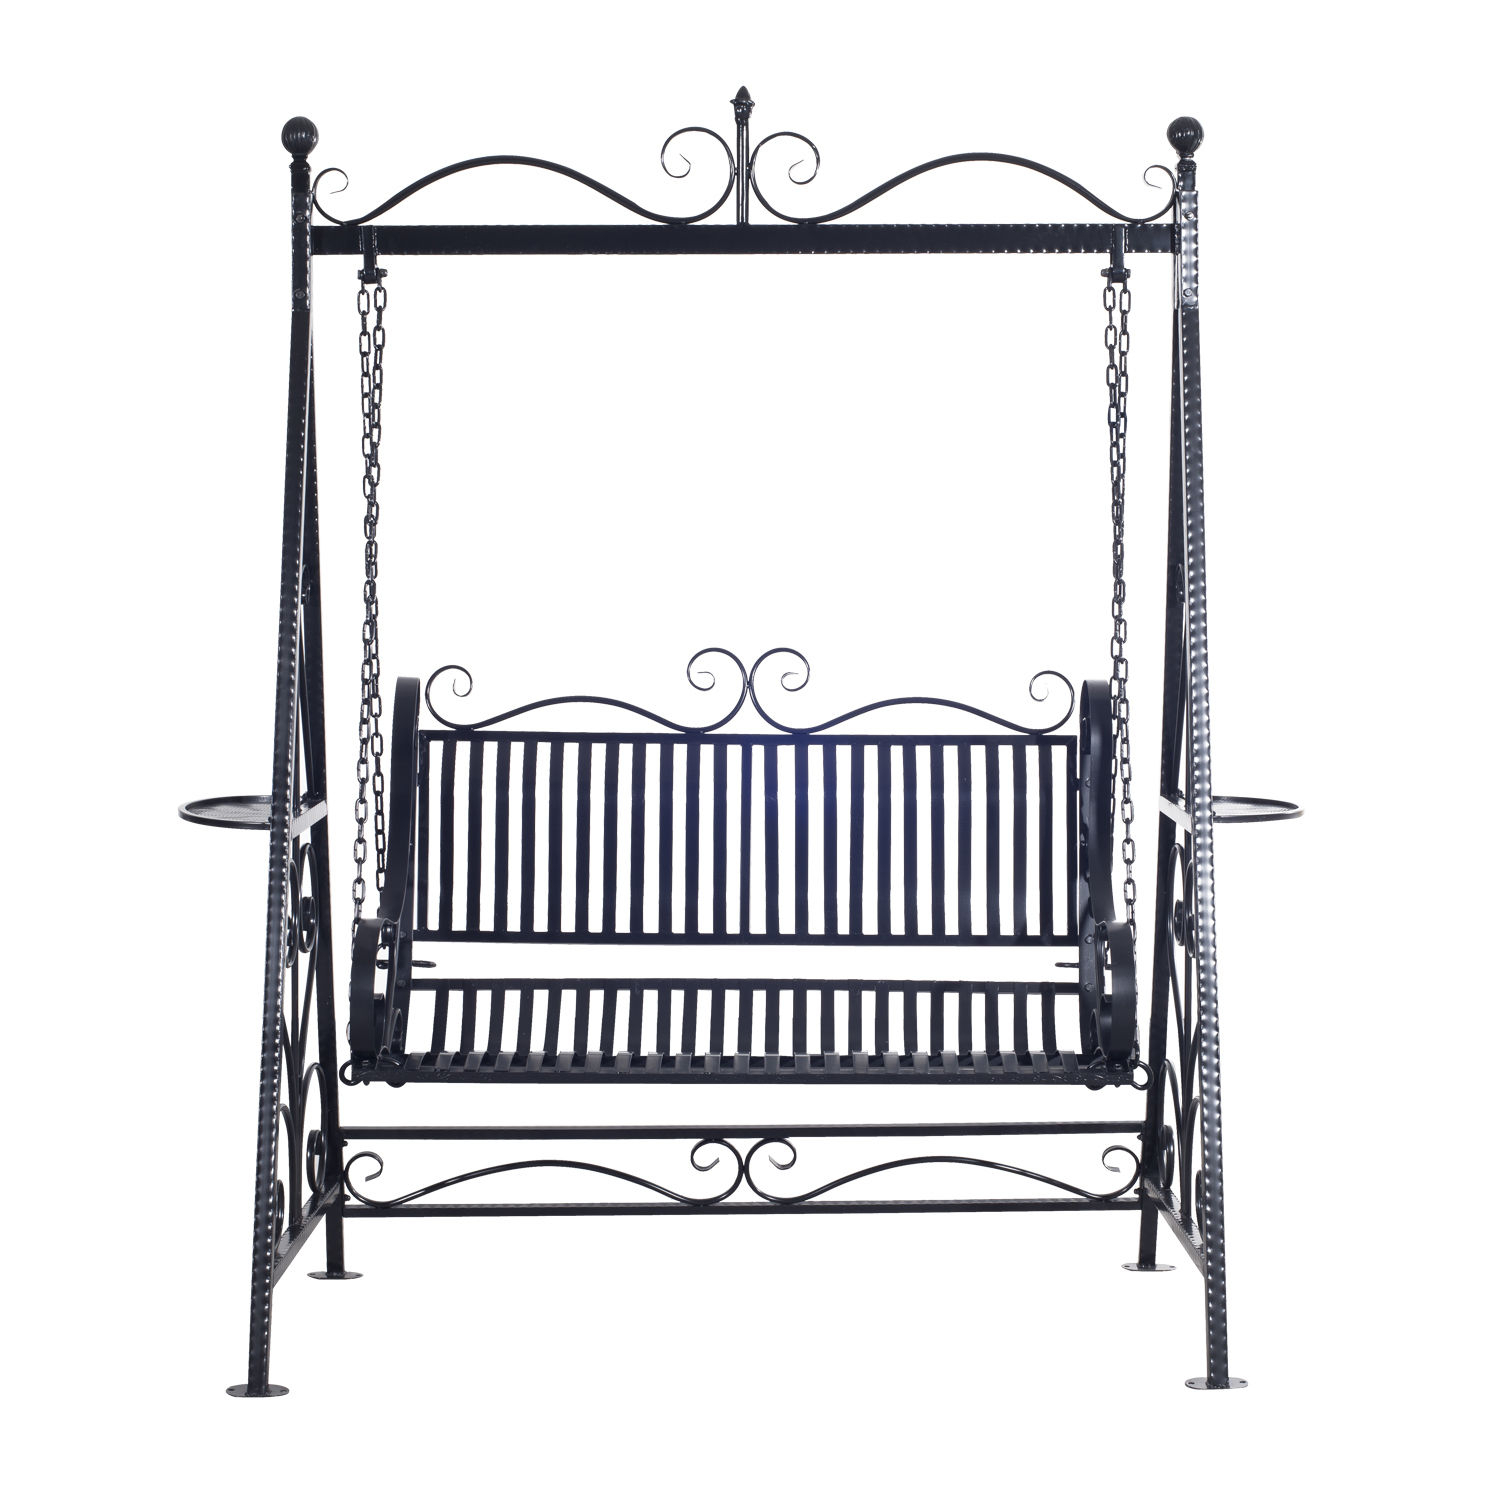 Outsunny Cast Iron Swing Chair Within 2 Person Antique Black Iron Outdoor Swings (View 17 of 25)